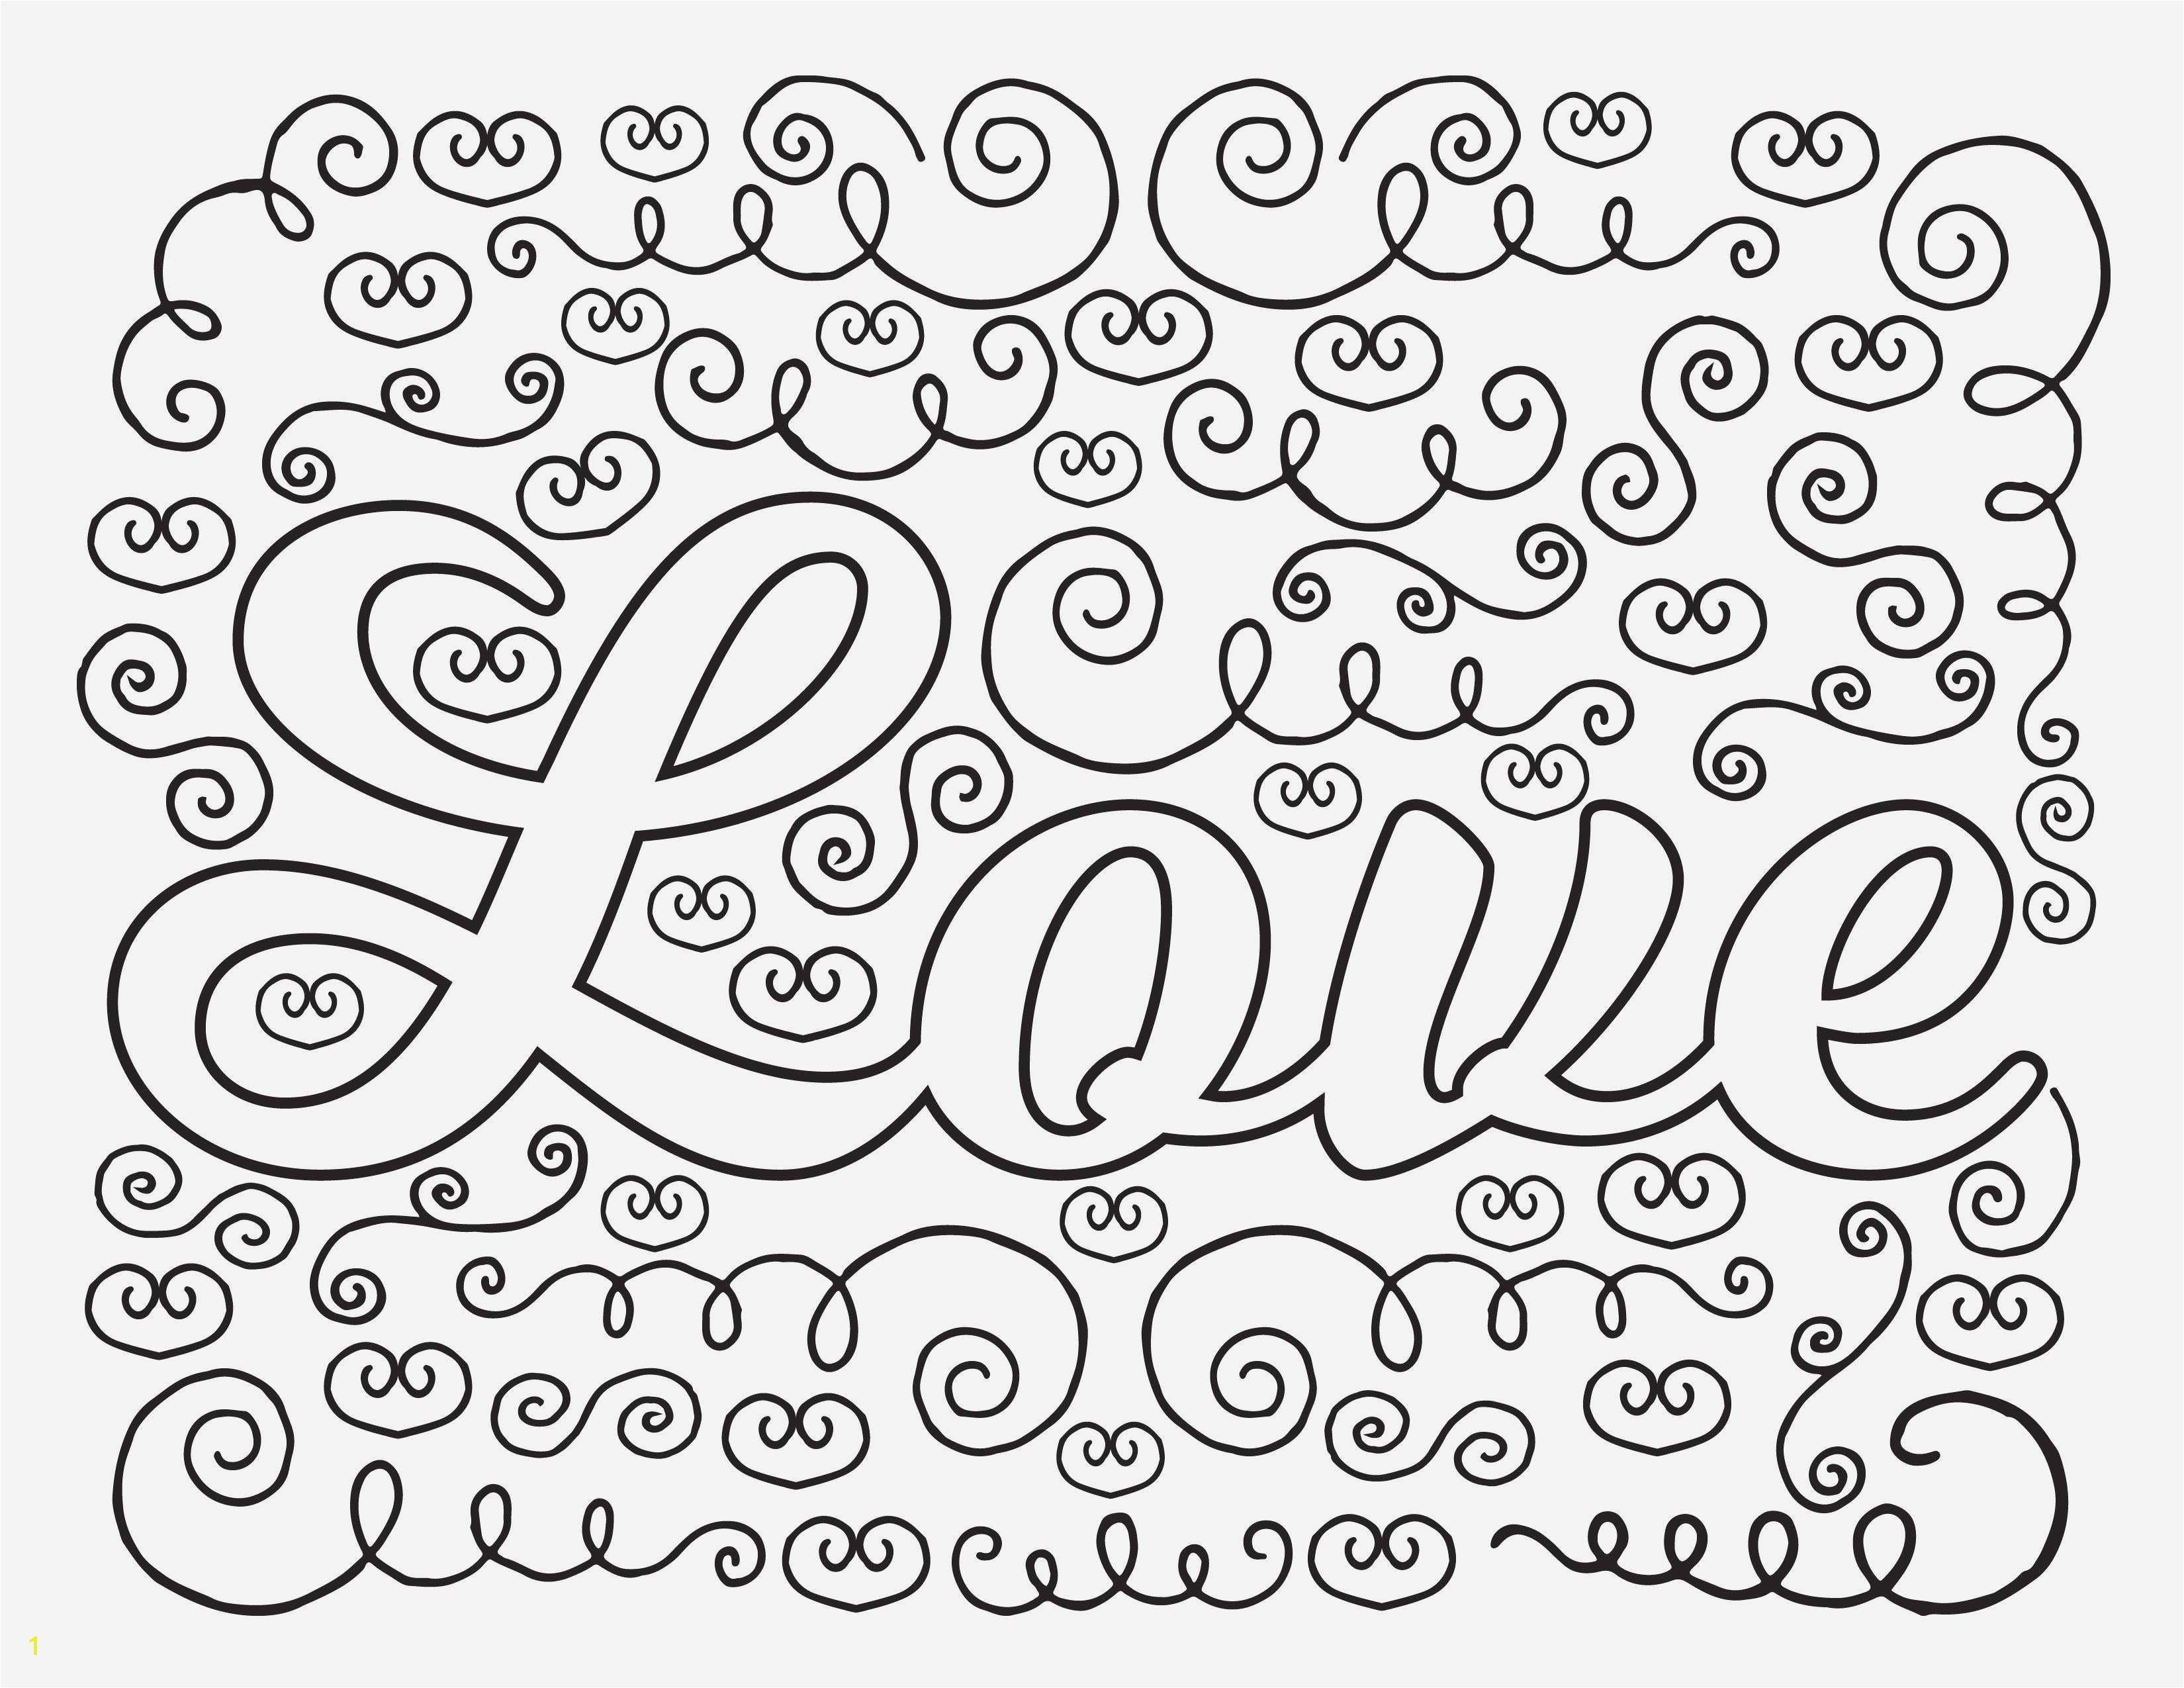 New Free Printable Childrens Coloring Pages Awesome Free Printable Kids Coloring Pages Beautiful Crayola Pages 0d